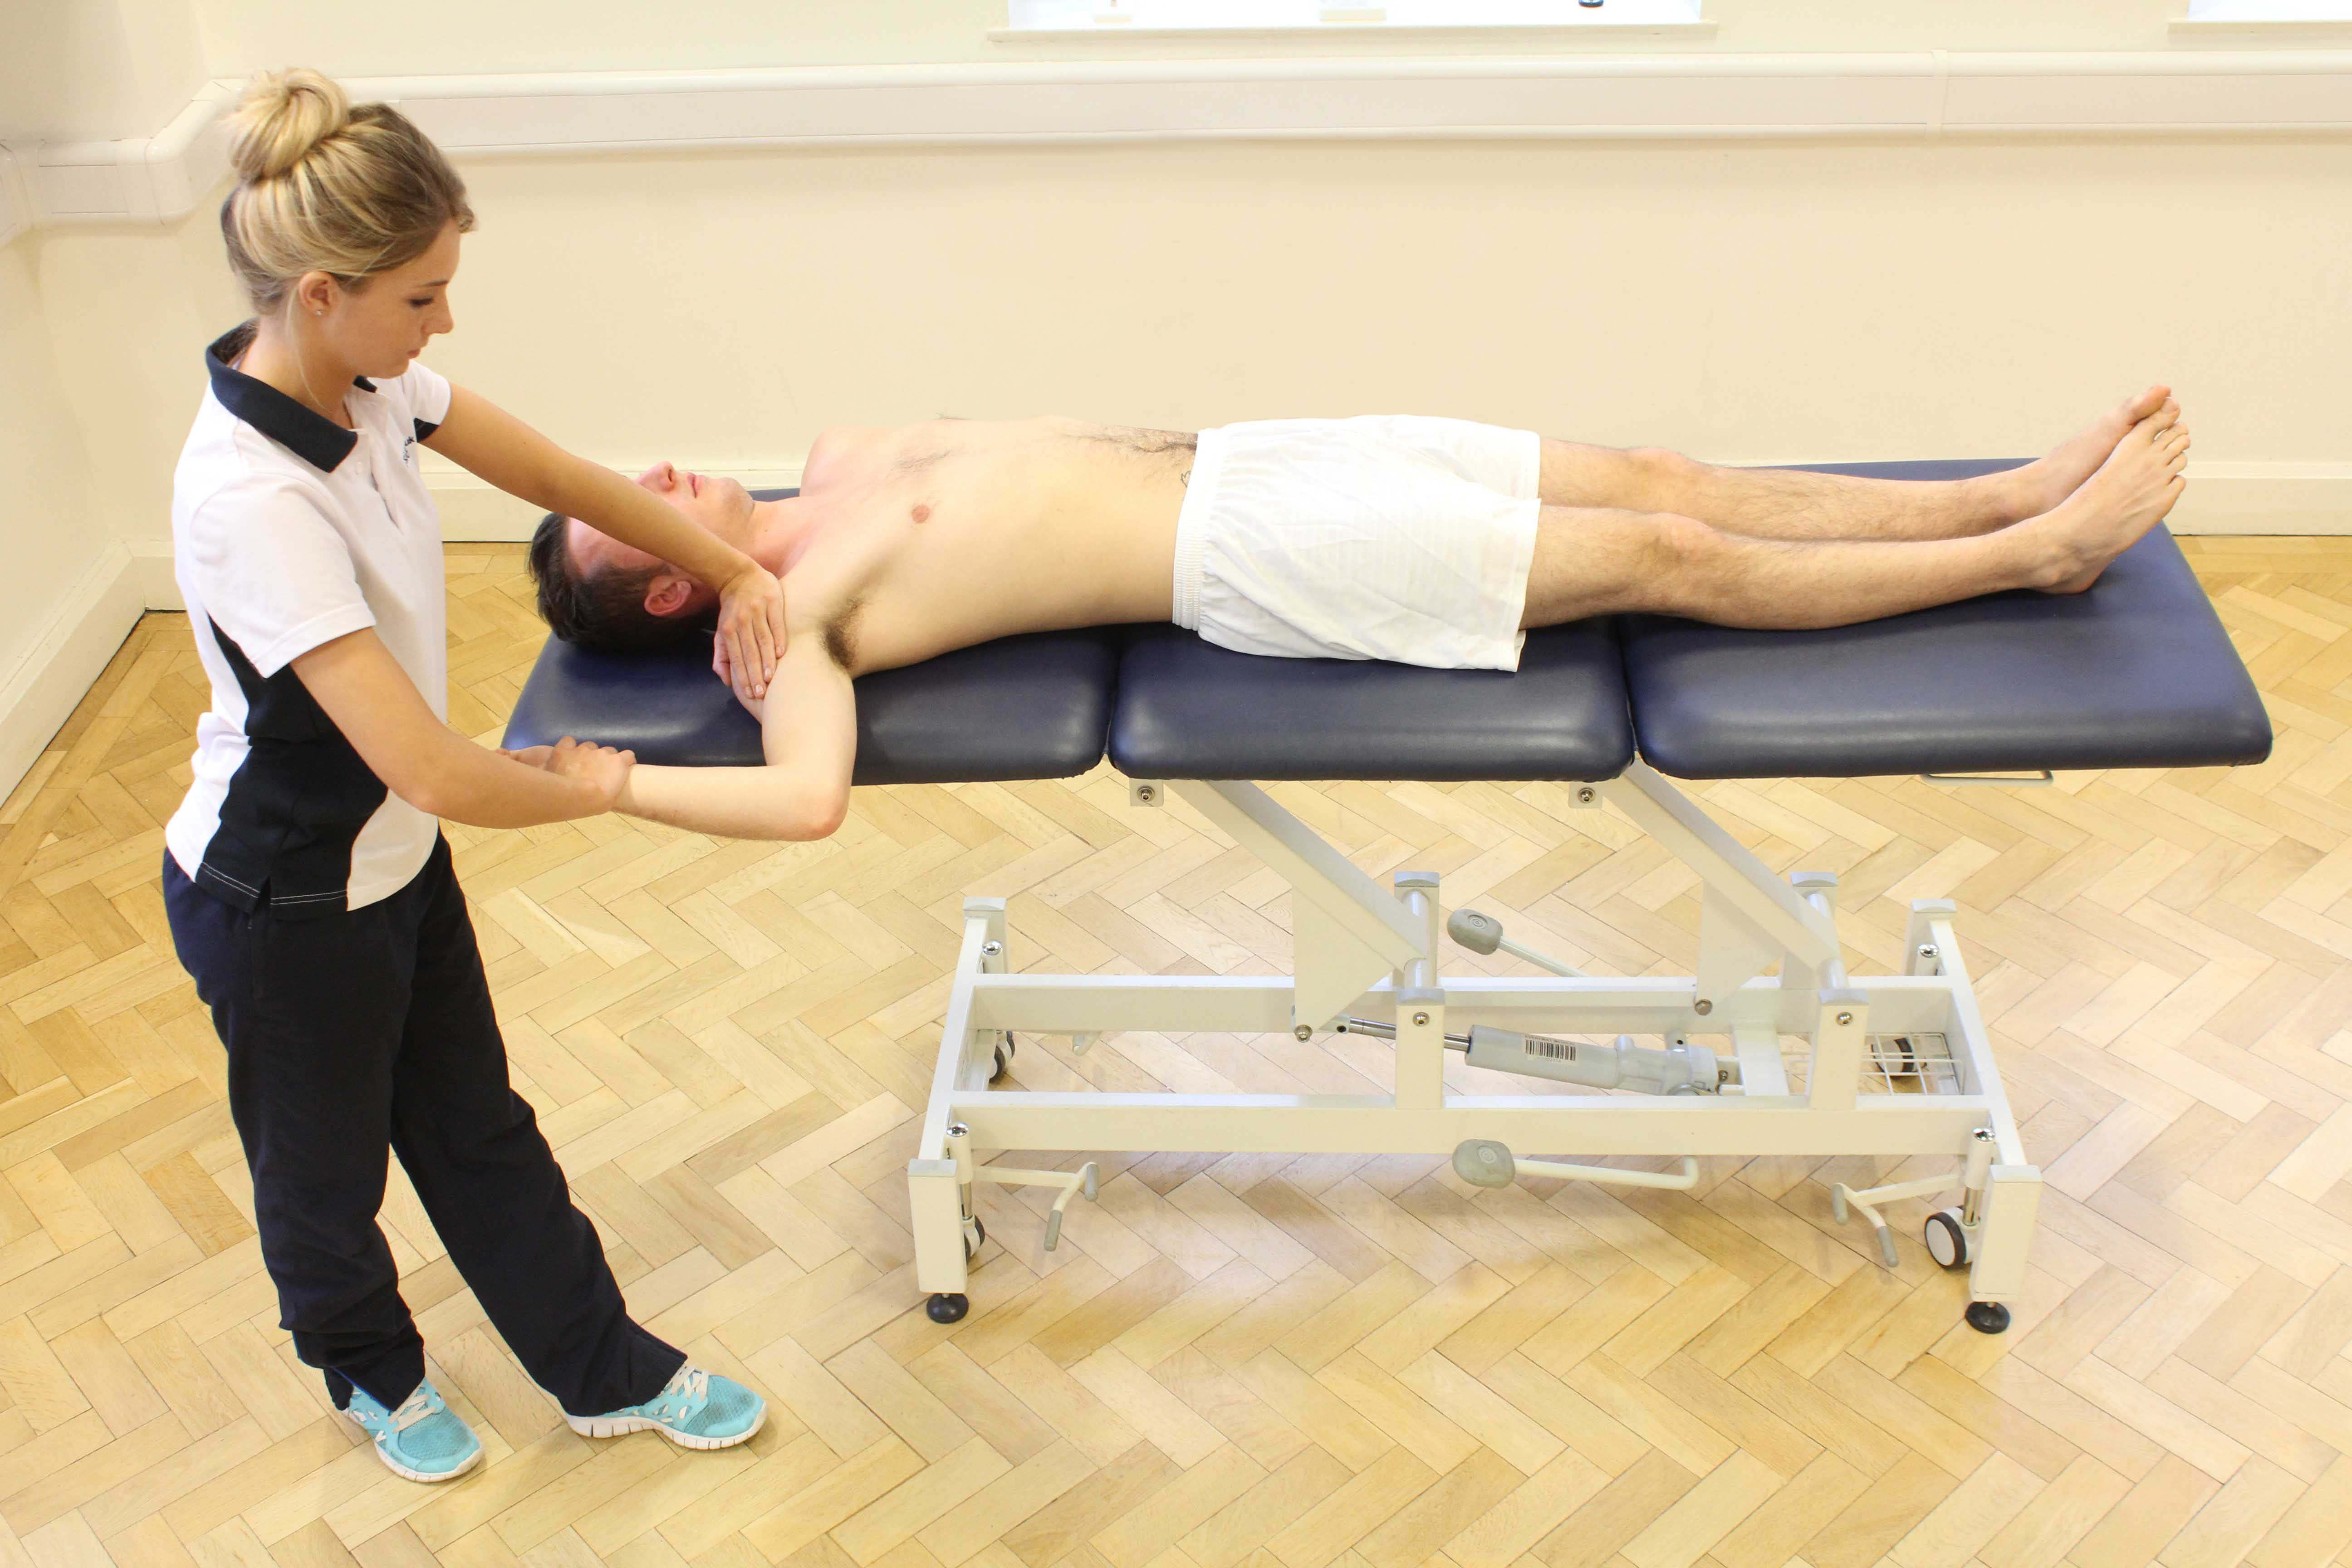 Soft tissue massage of the palma fascia to relieve pain and stiffness